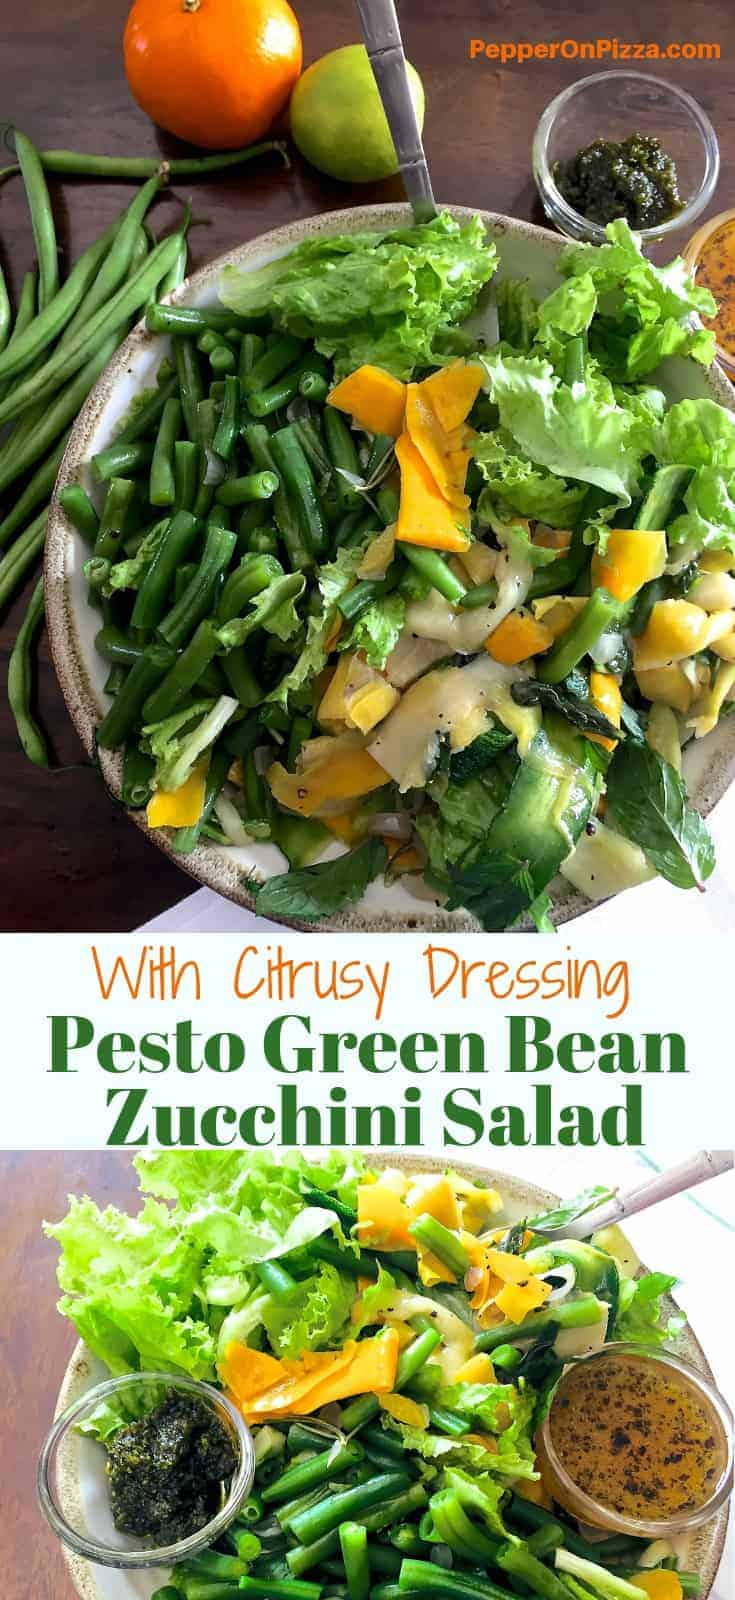 Two images one below the other of pesto Bean Ribboned Zucchini Salad, each in a bowl of green beans, yellow and green zucchini and with little cups of pesto and citrus dressing. One image is of the bowl resting on a white napkin with green stripes and the other on a green plantain leaf